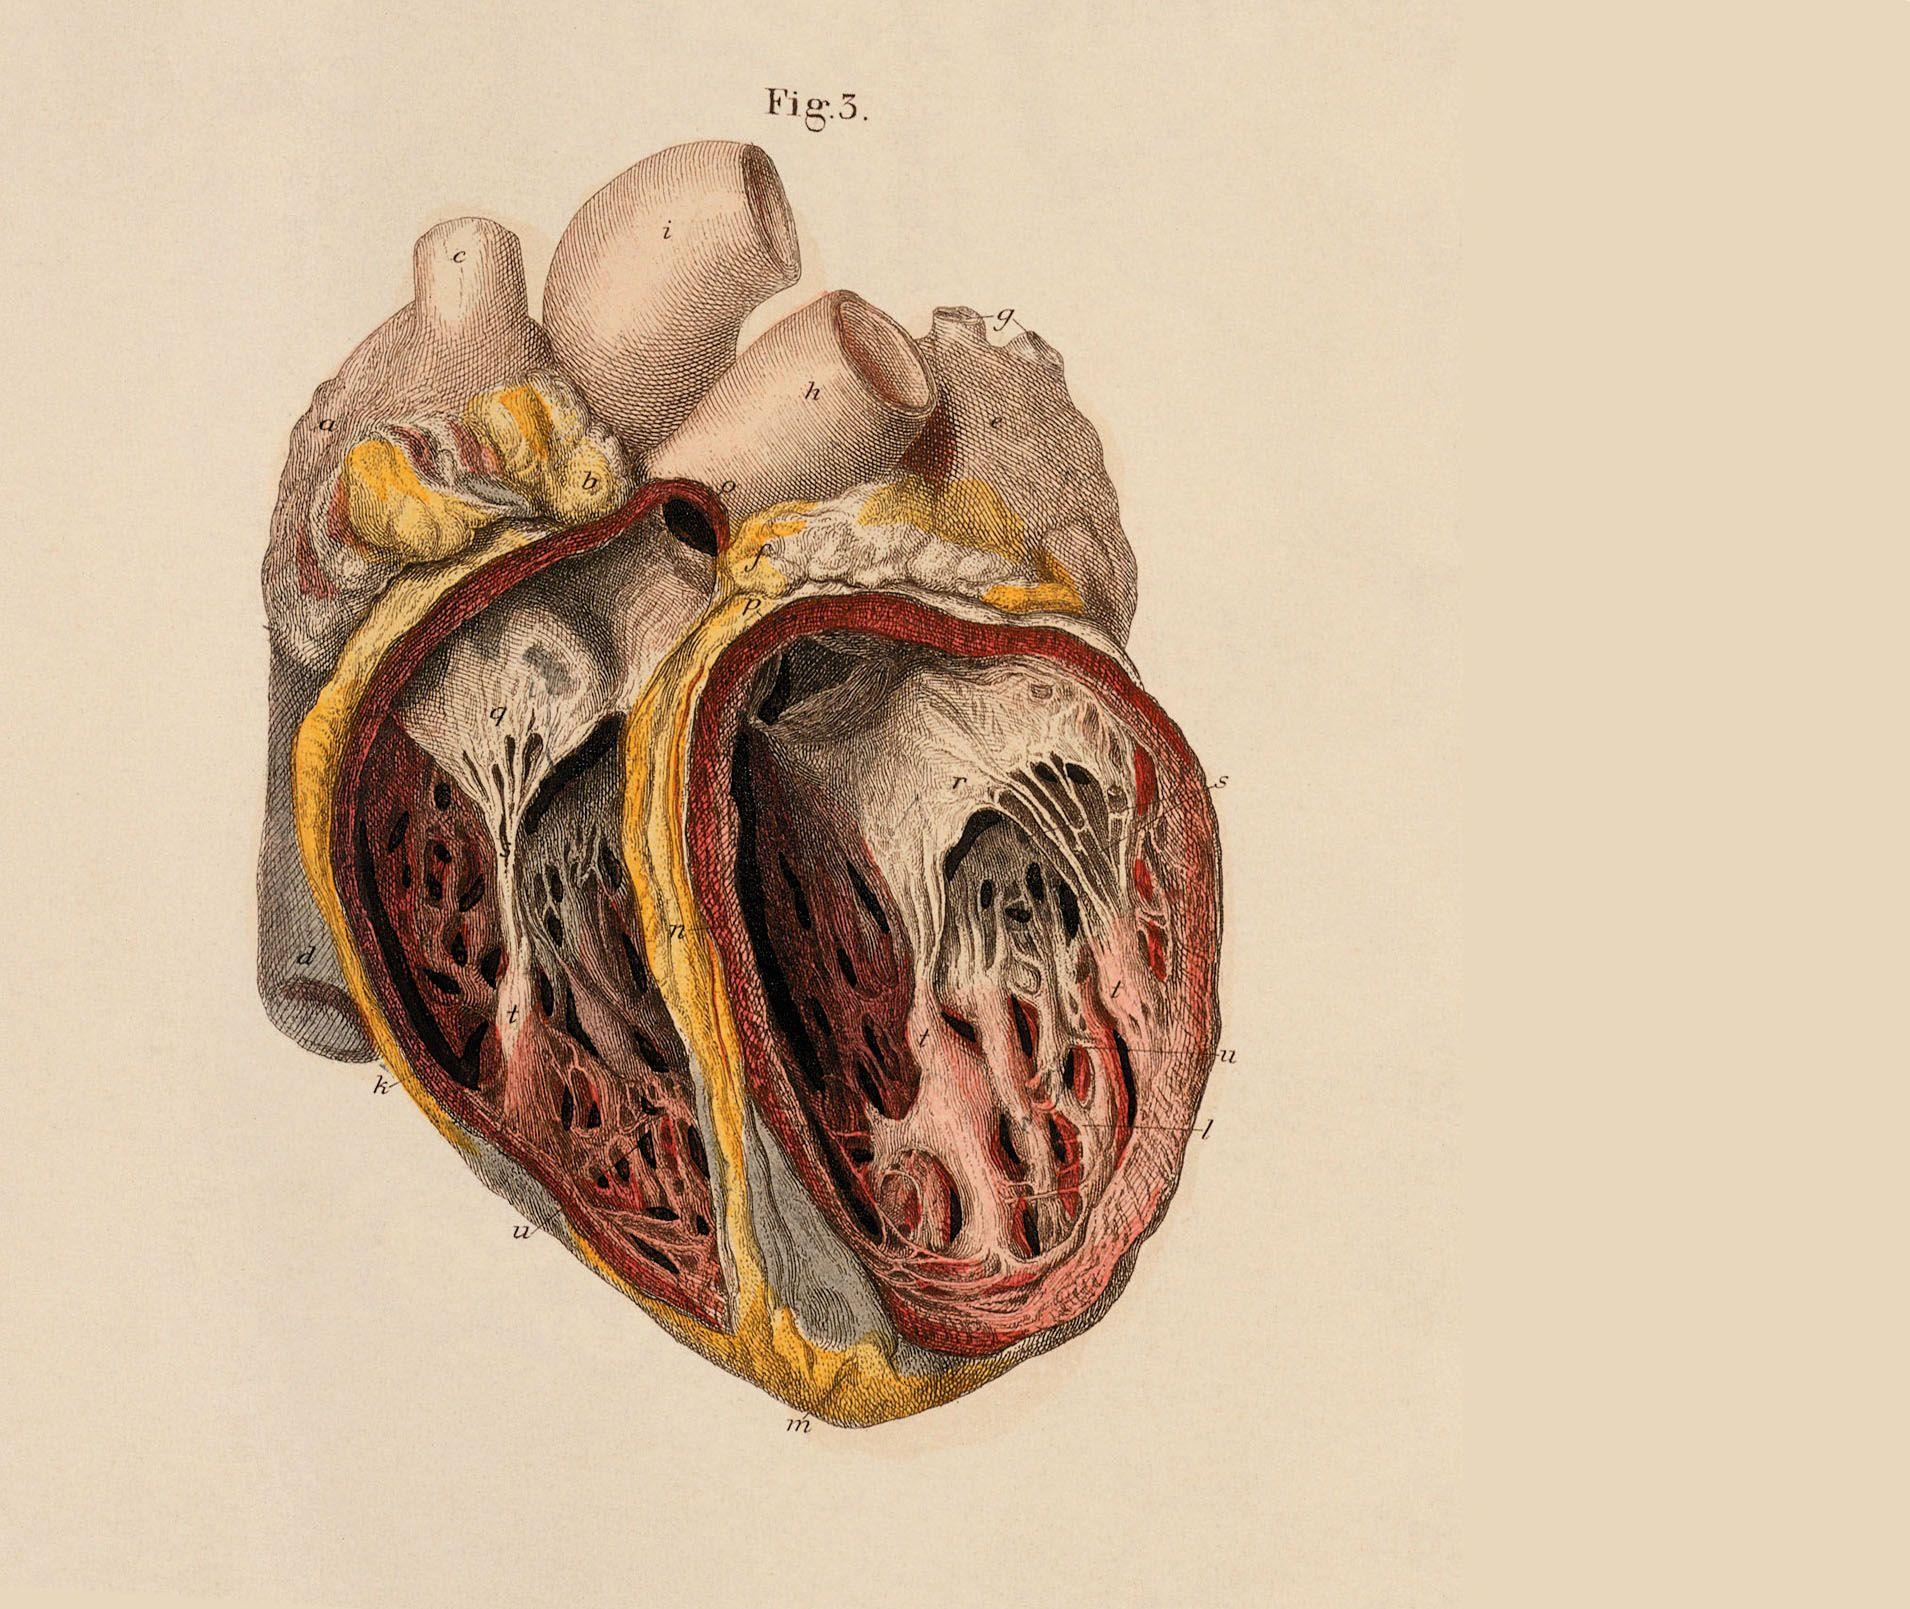 Heart Anatomy Wallpaper Hd